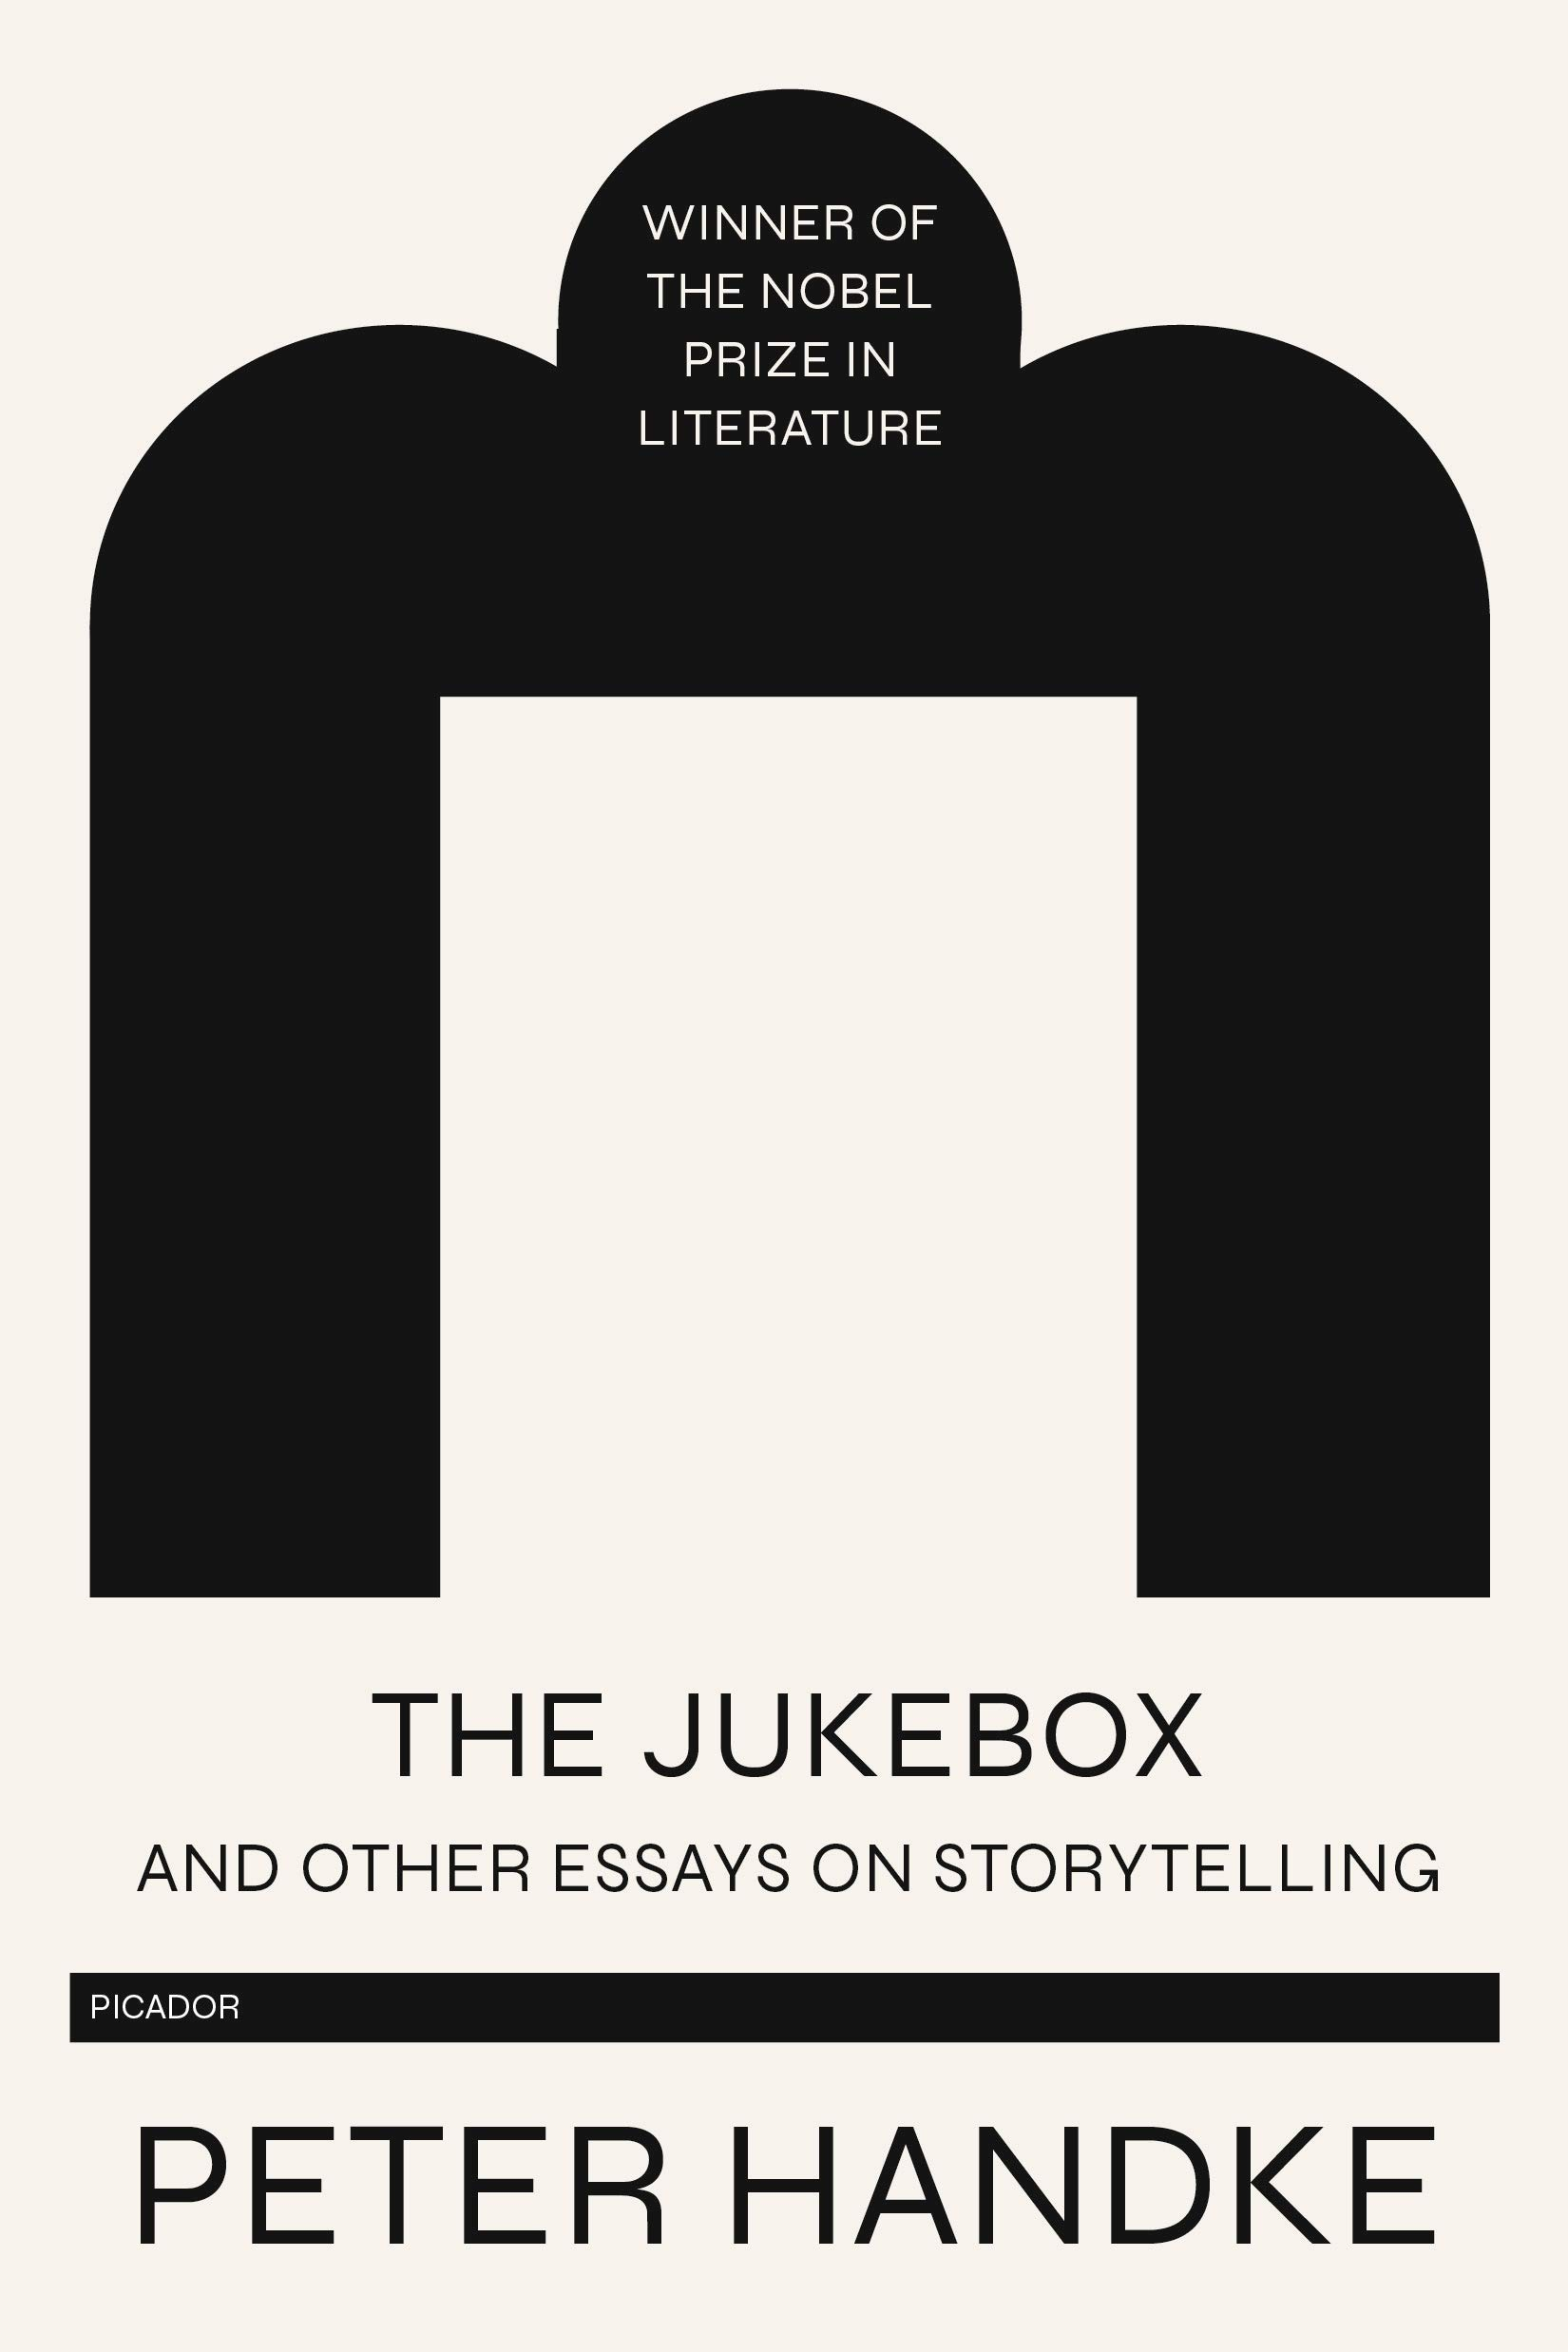 The Jukebox and Other Essays on Storytelling: Amazon.es: Handke, Peter: Libros en idiomas extranjeros